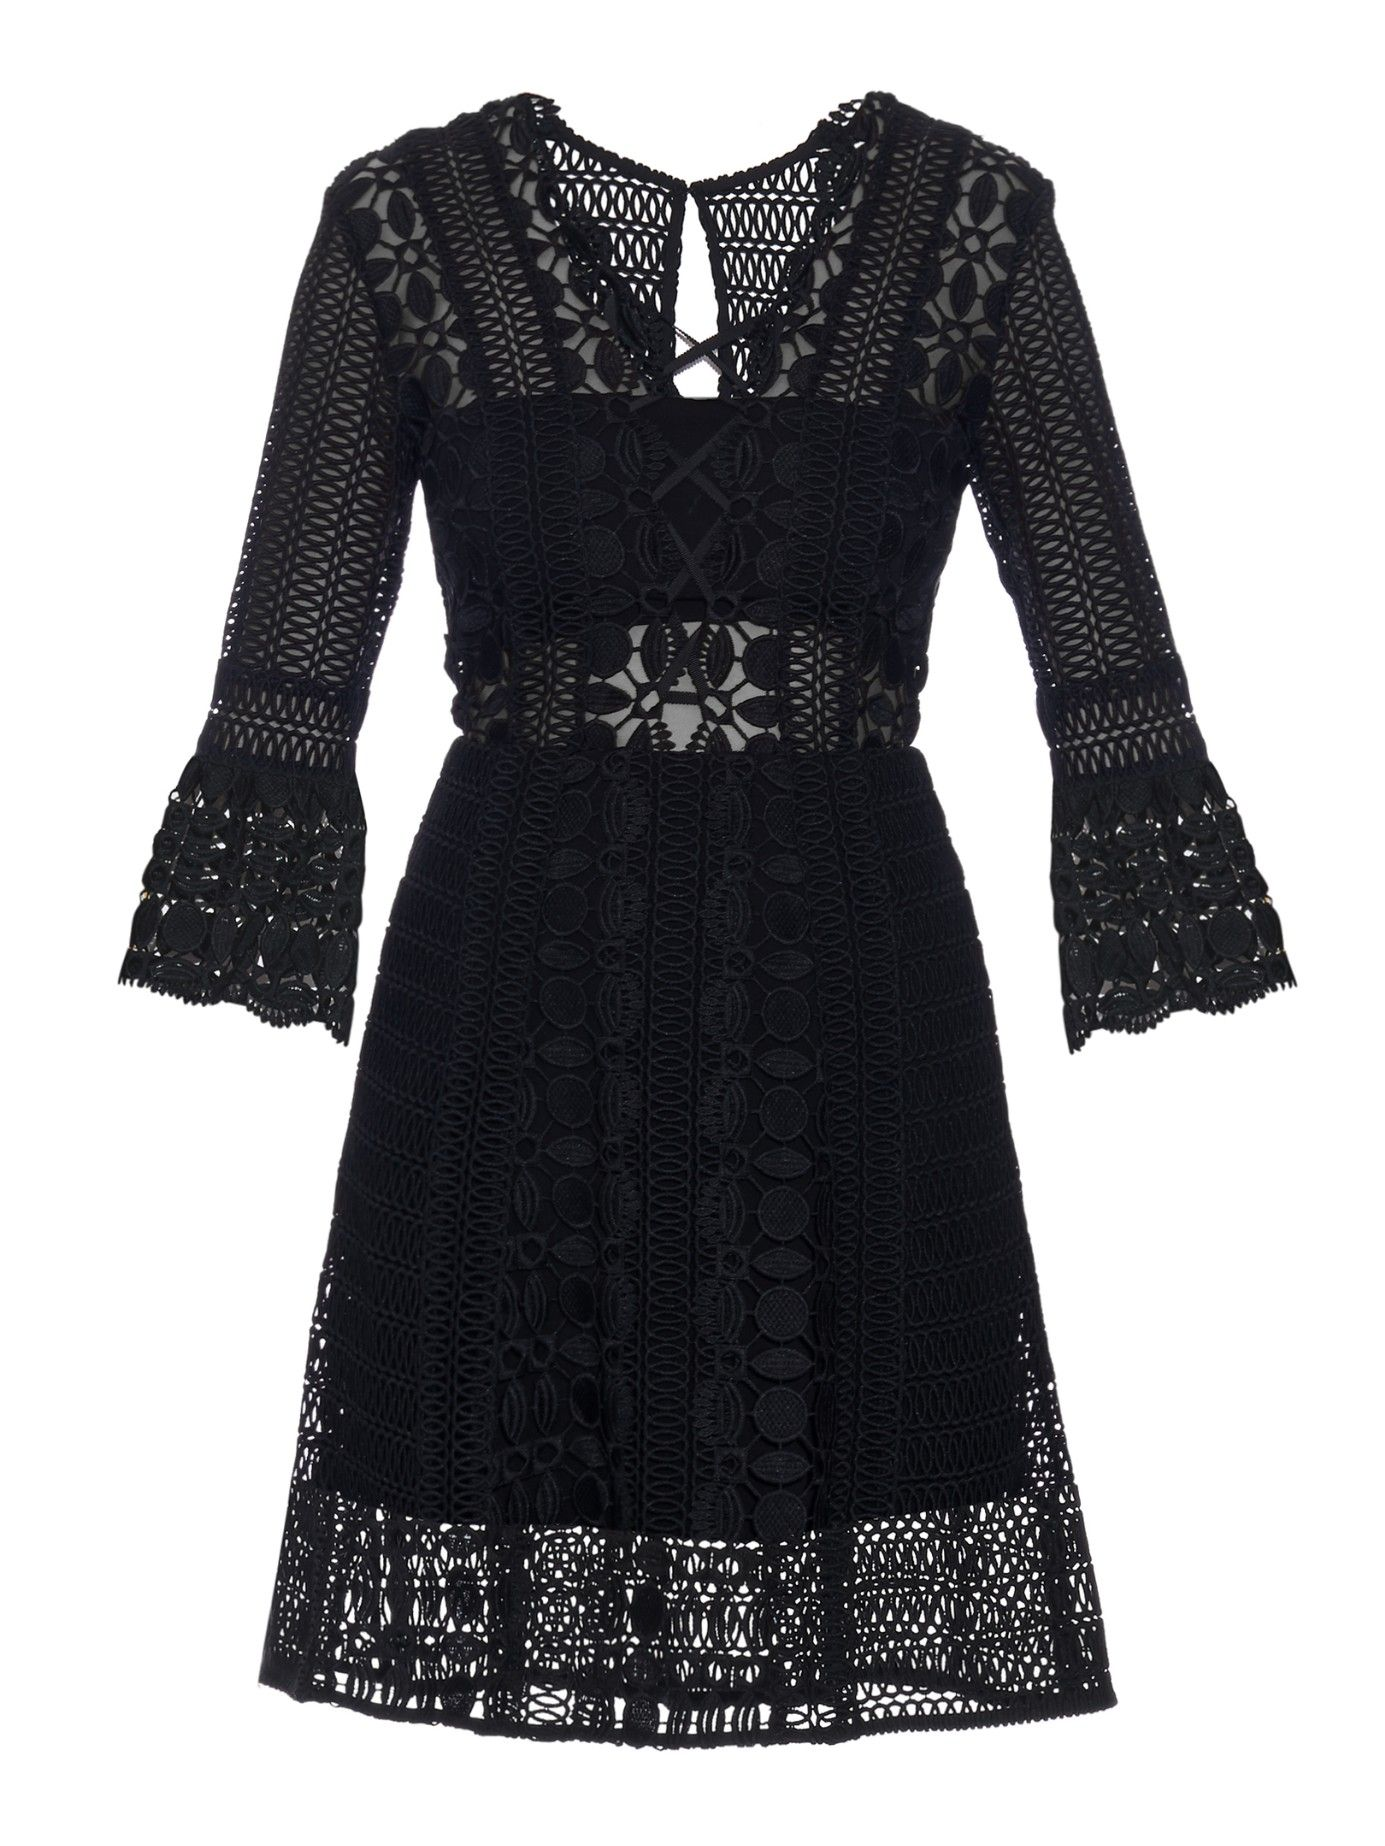 Black and white dresses for wedding guests  Laceup Aline dress  Selfportrait  MATCHESFASHIONCOM US